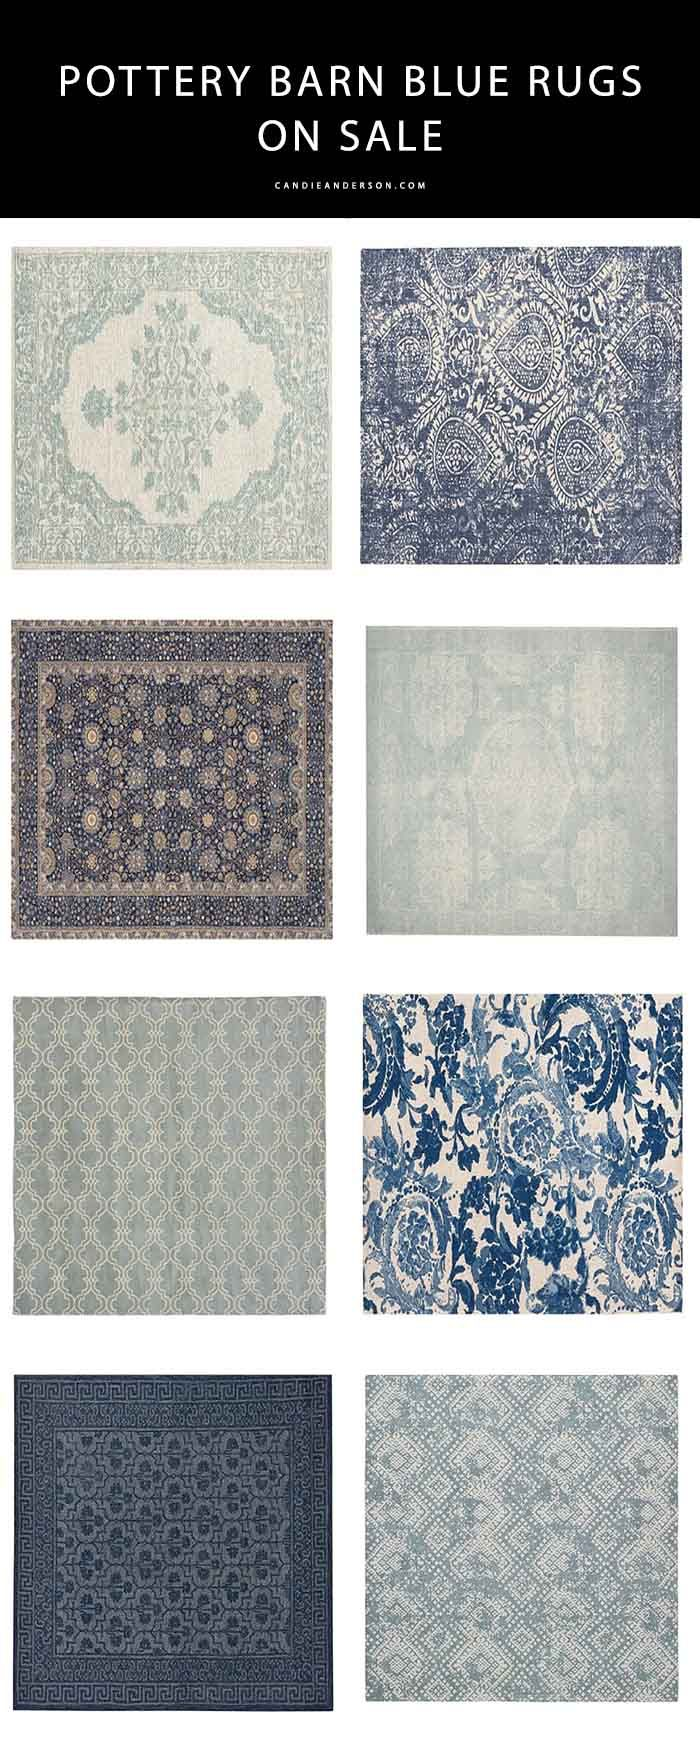 10 Trendy Blue Pottery Barn Rugs On Sale Rugs Pottery Barn